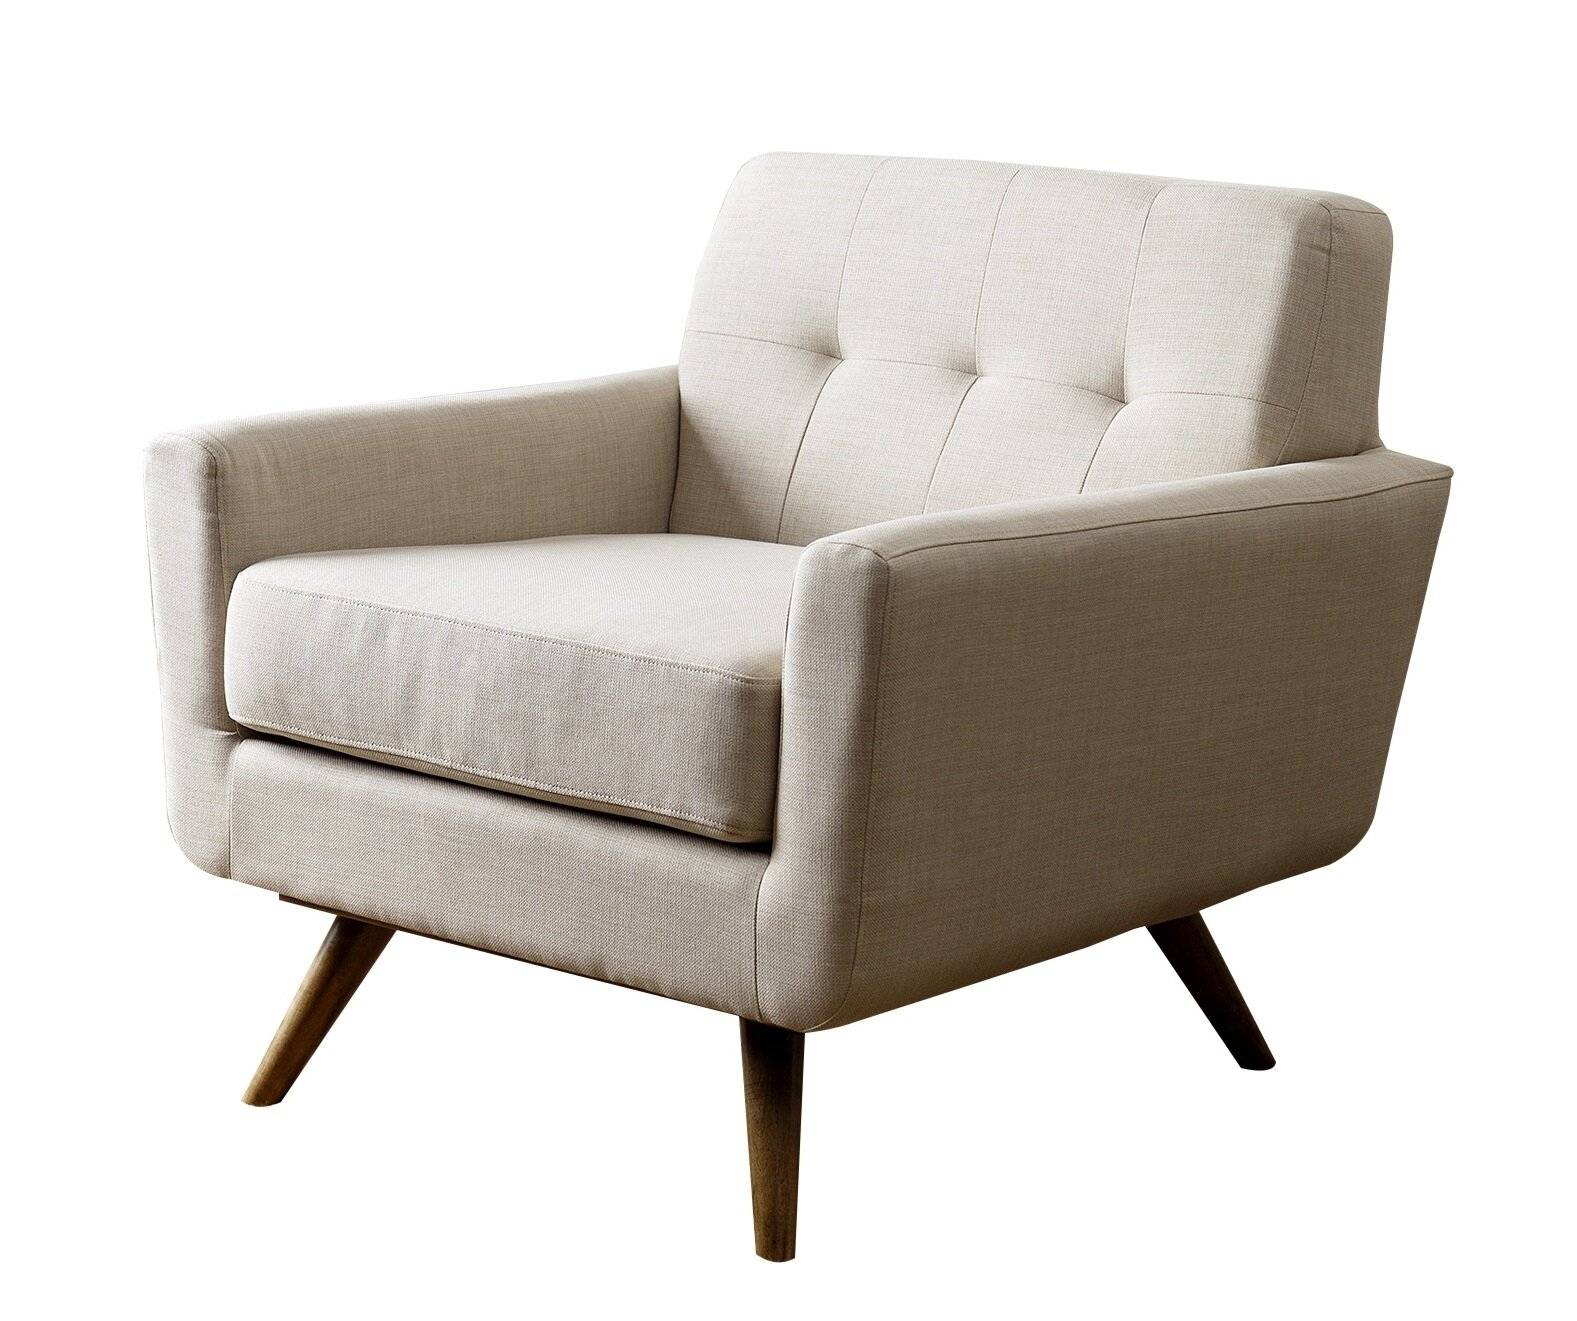 Norton St Philip Armchair Intended For Belz Tufted Polyester Armchairs (View 12 of 15)